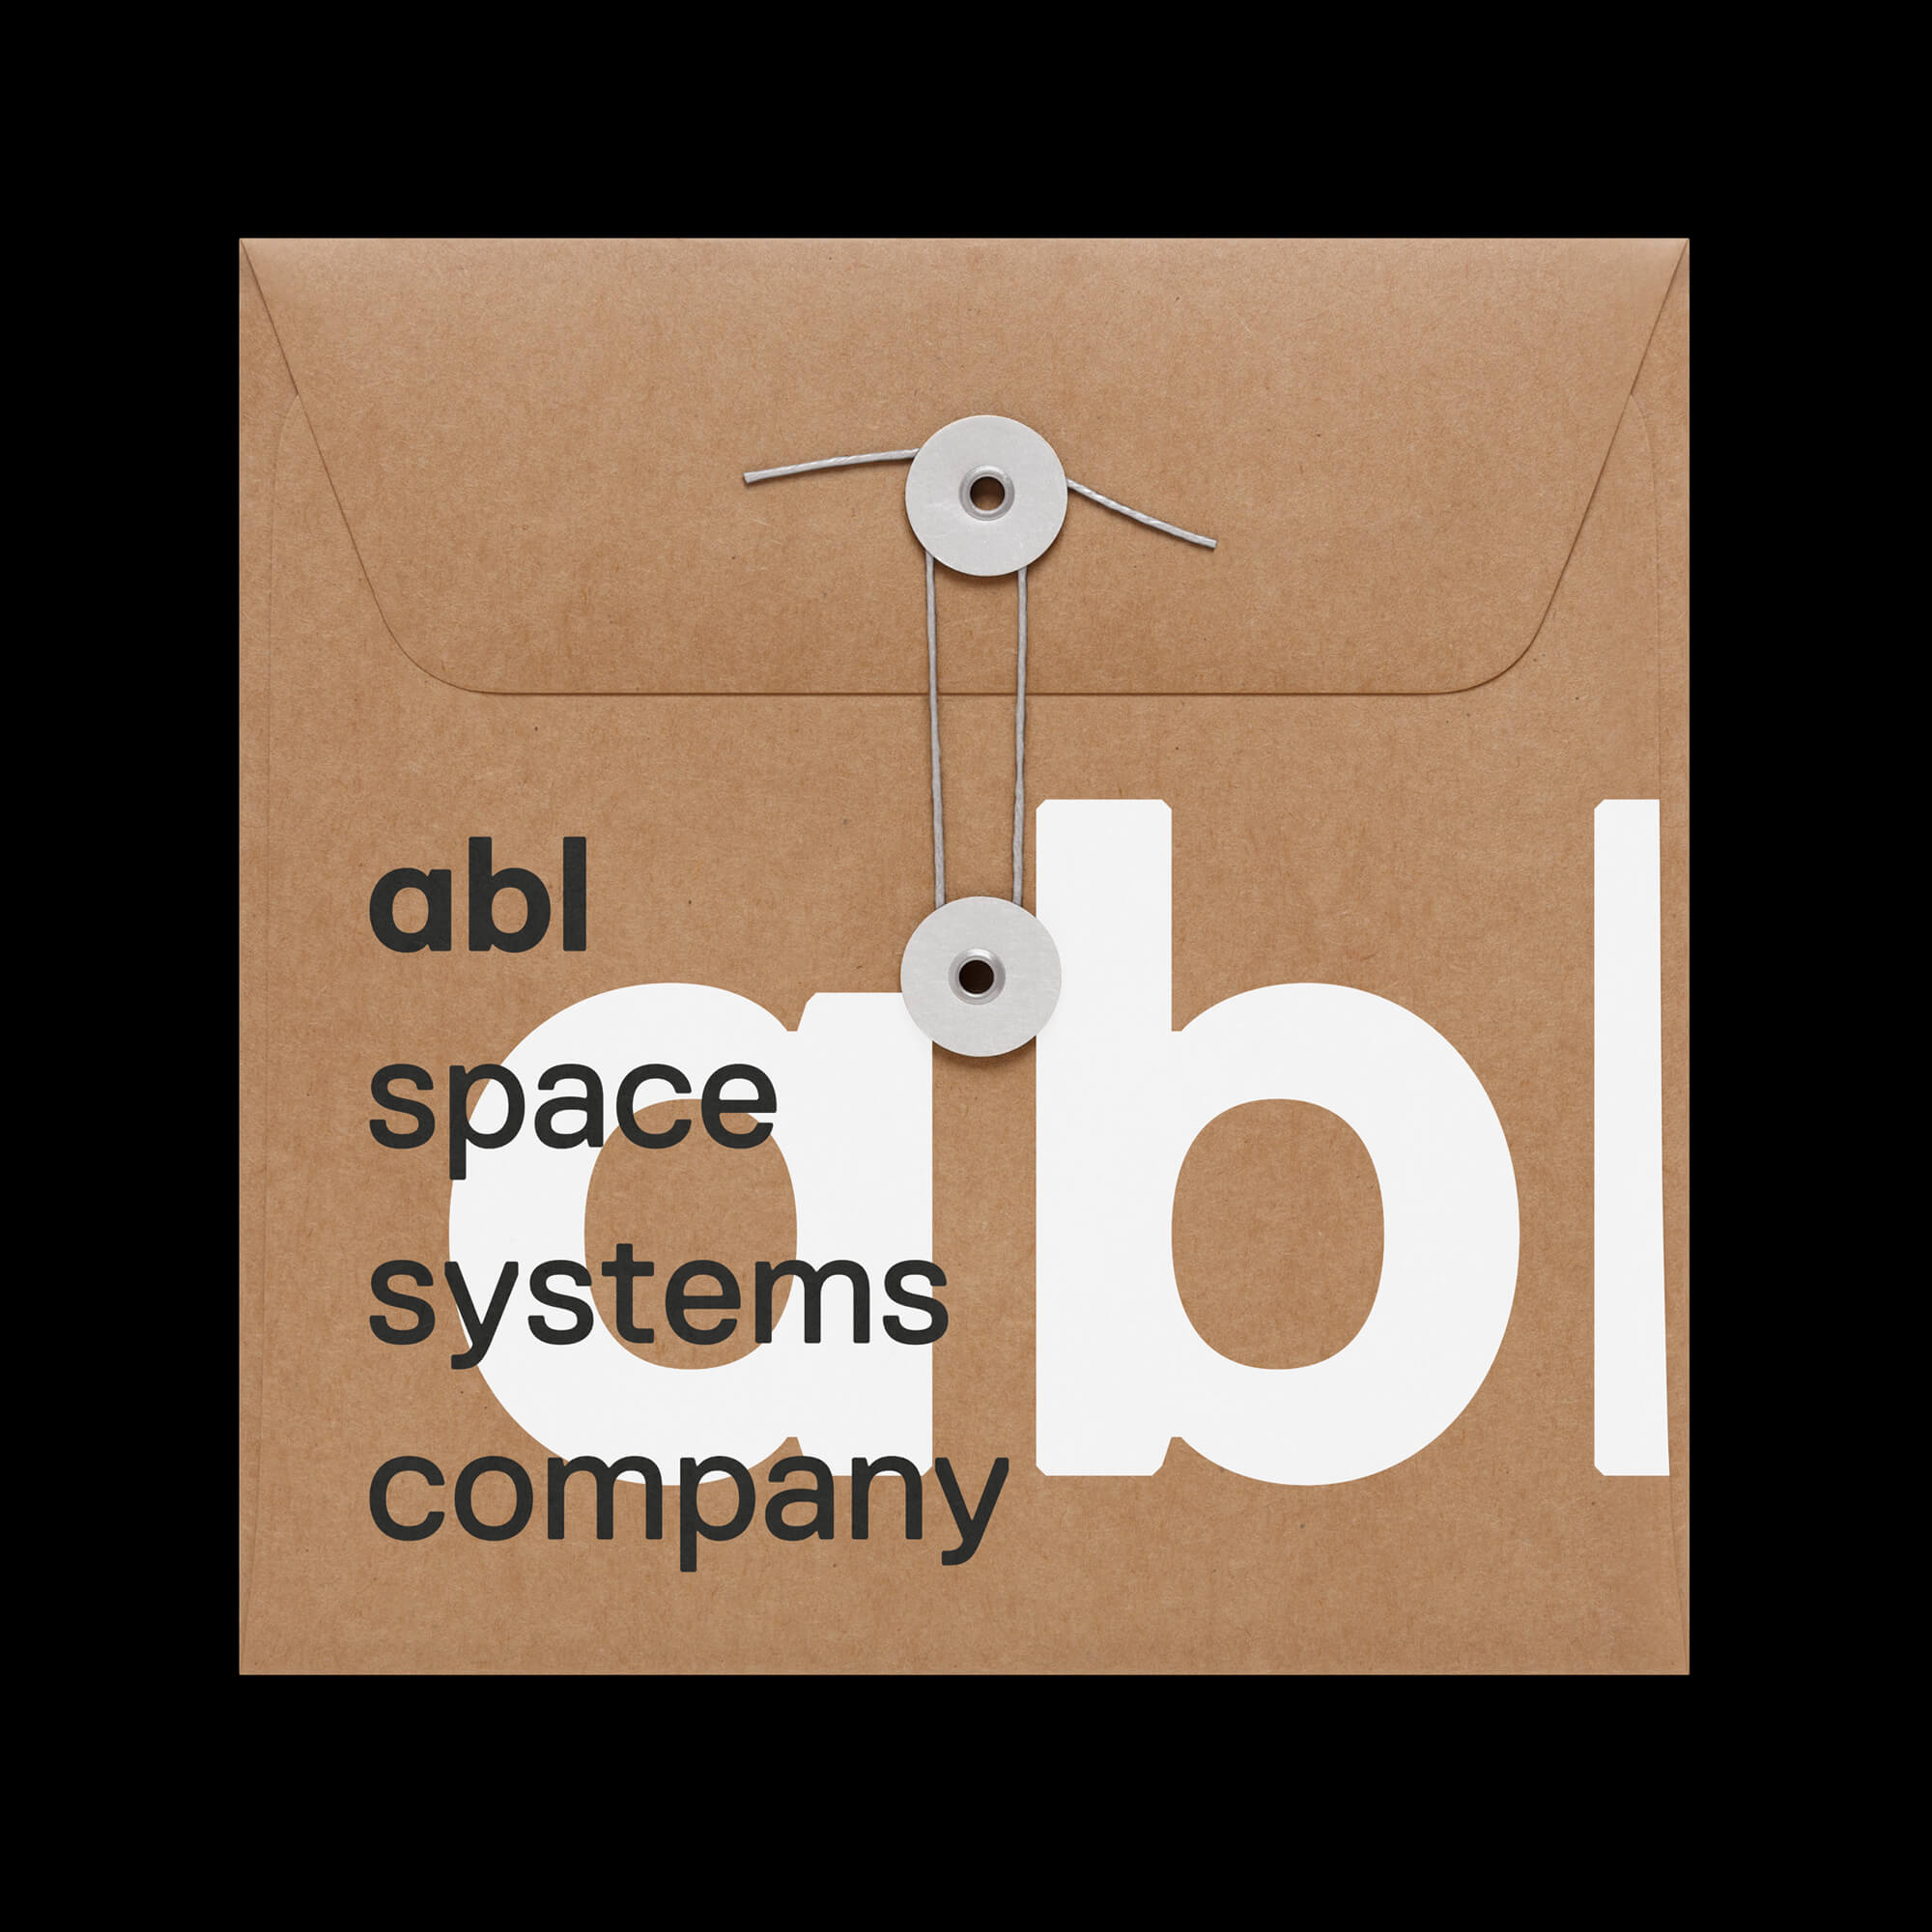 andreas_weiland_abl_space_systems